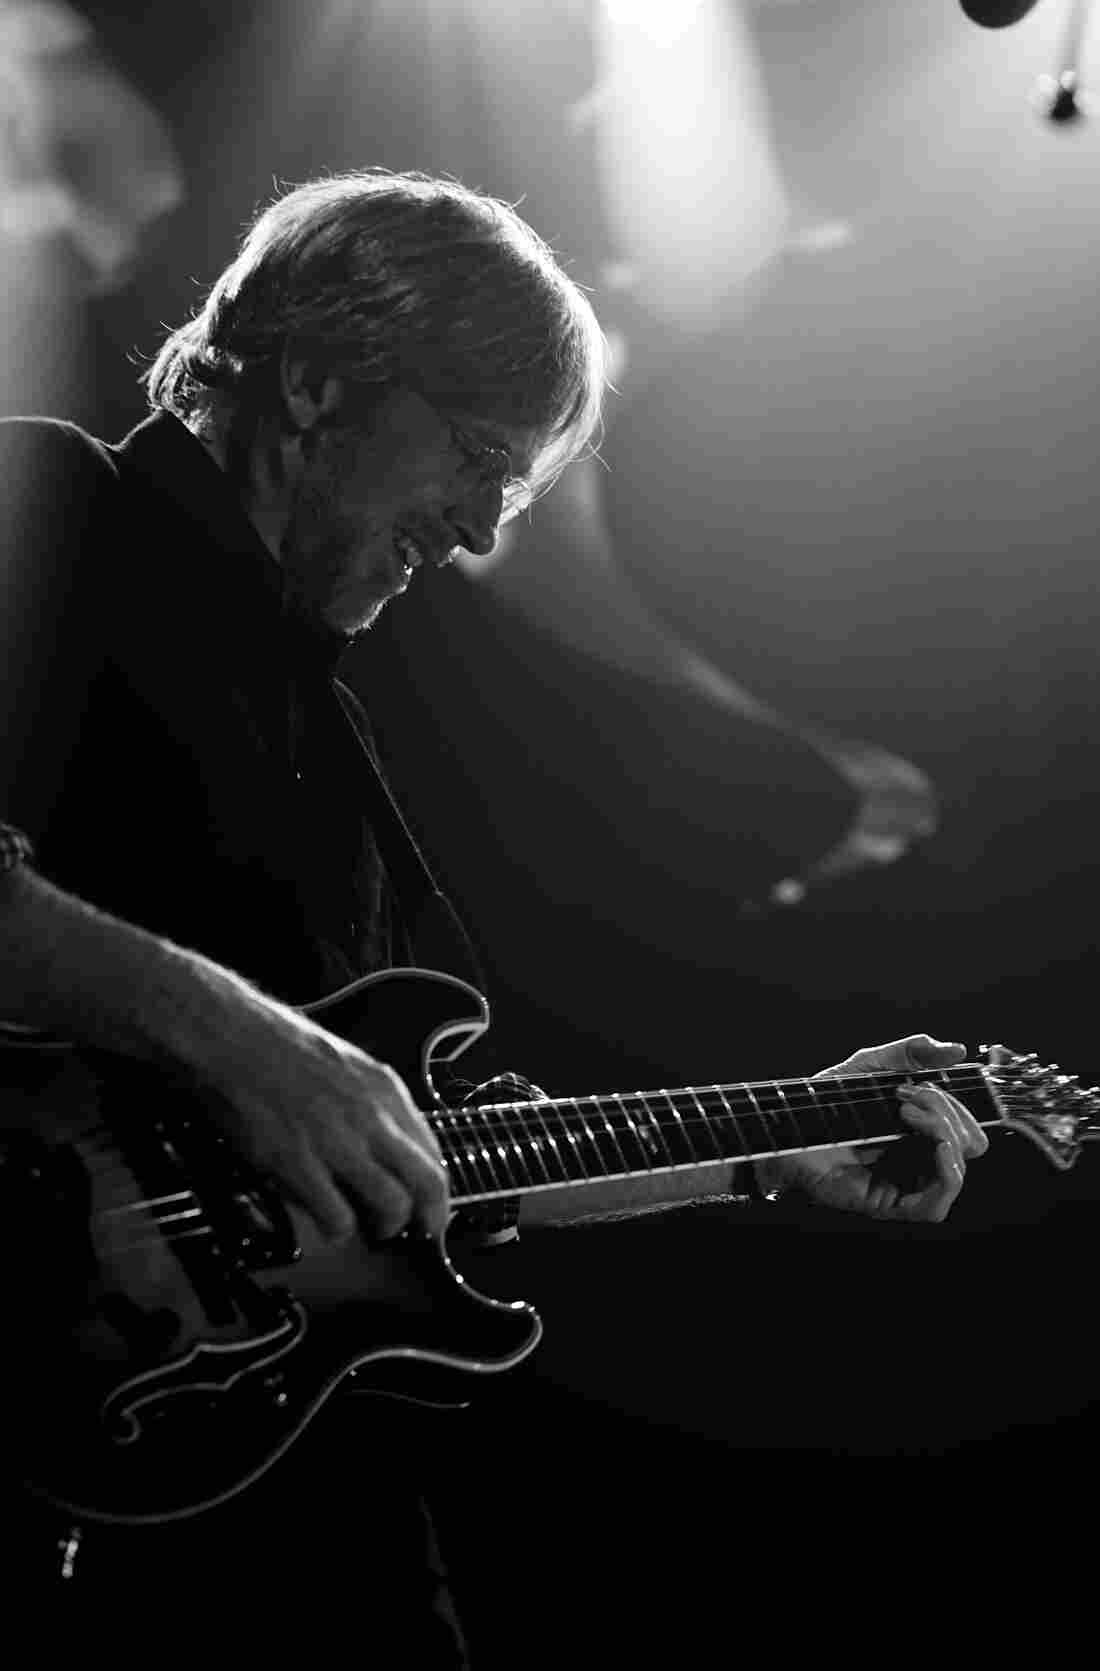 Trey Anastasio 9:30 Club Washington, D.C. Photo by Bob Boilen for NPR Music